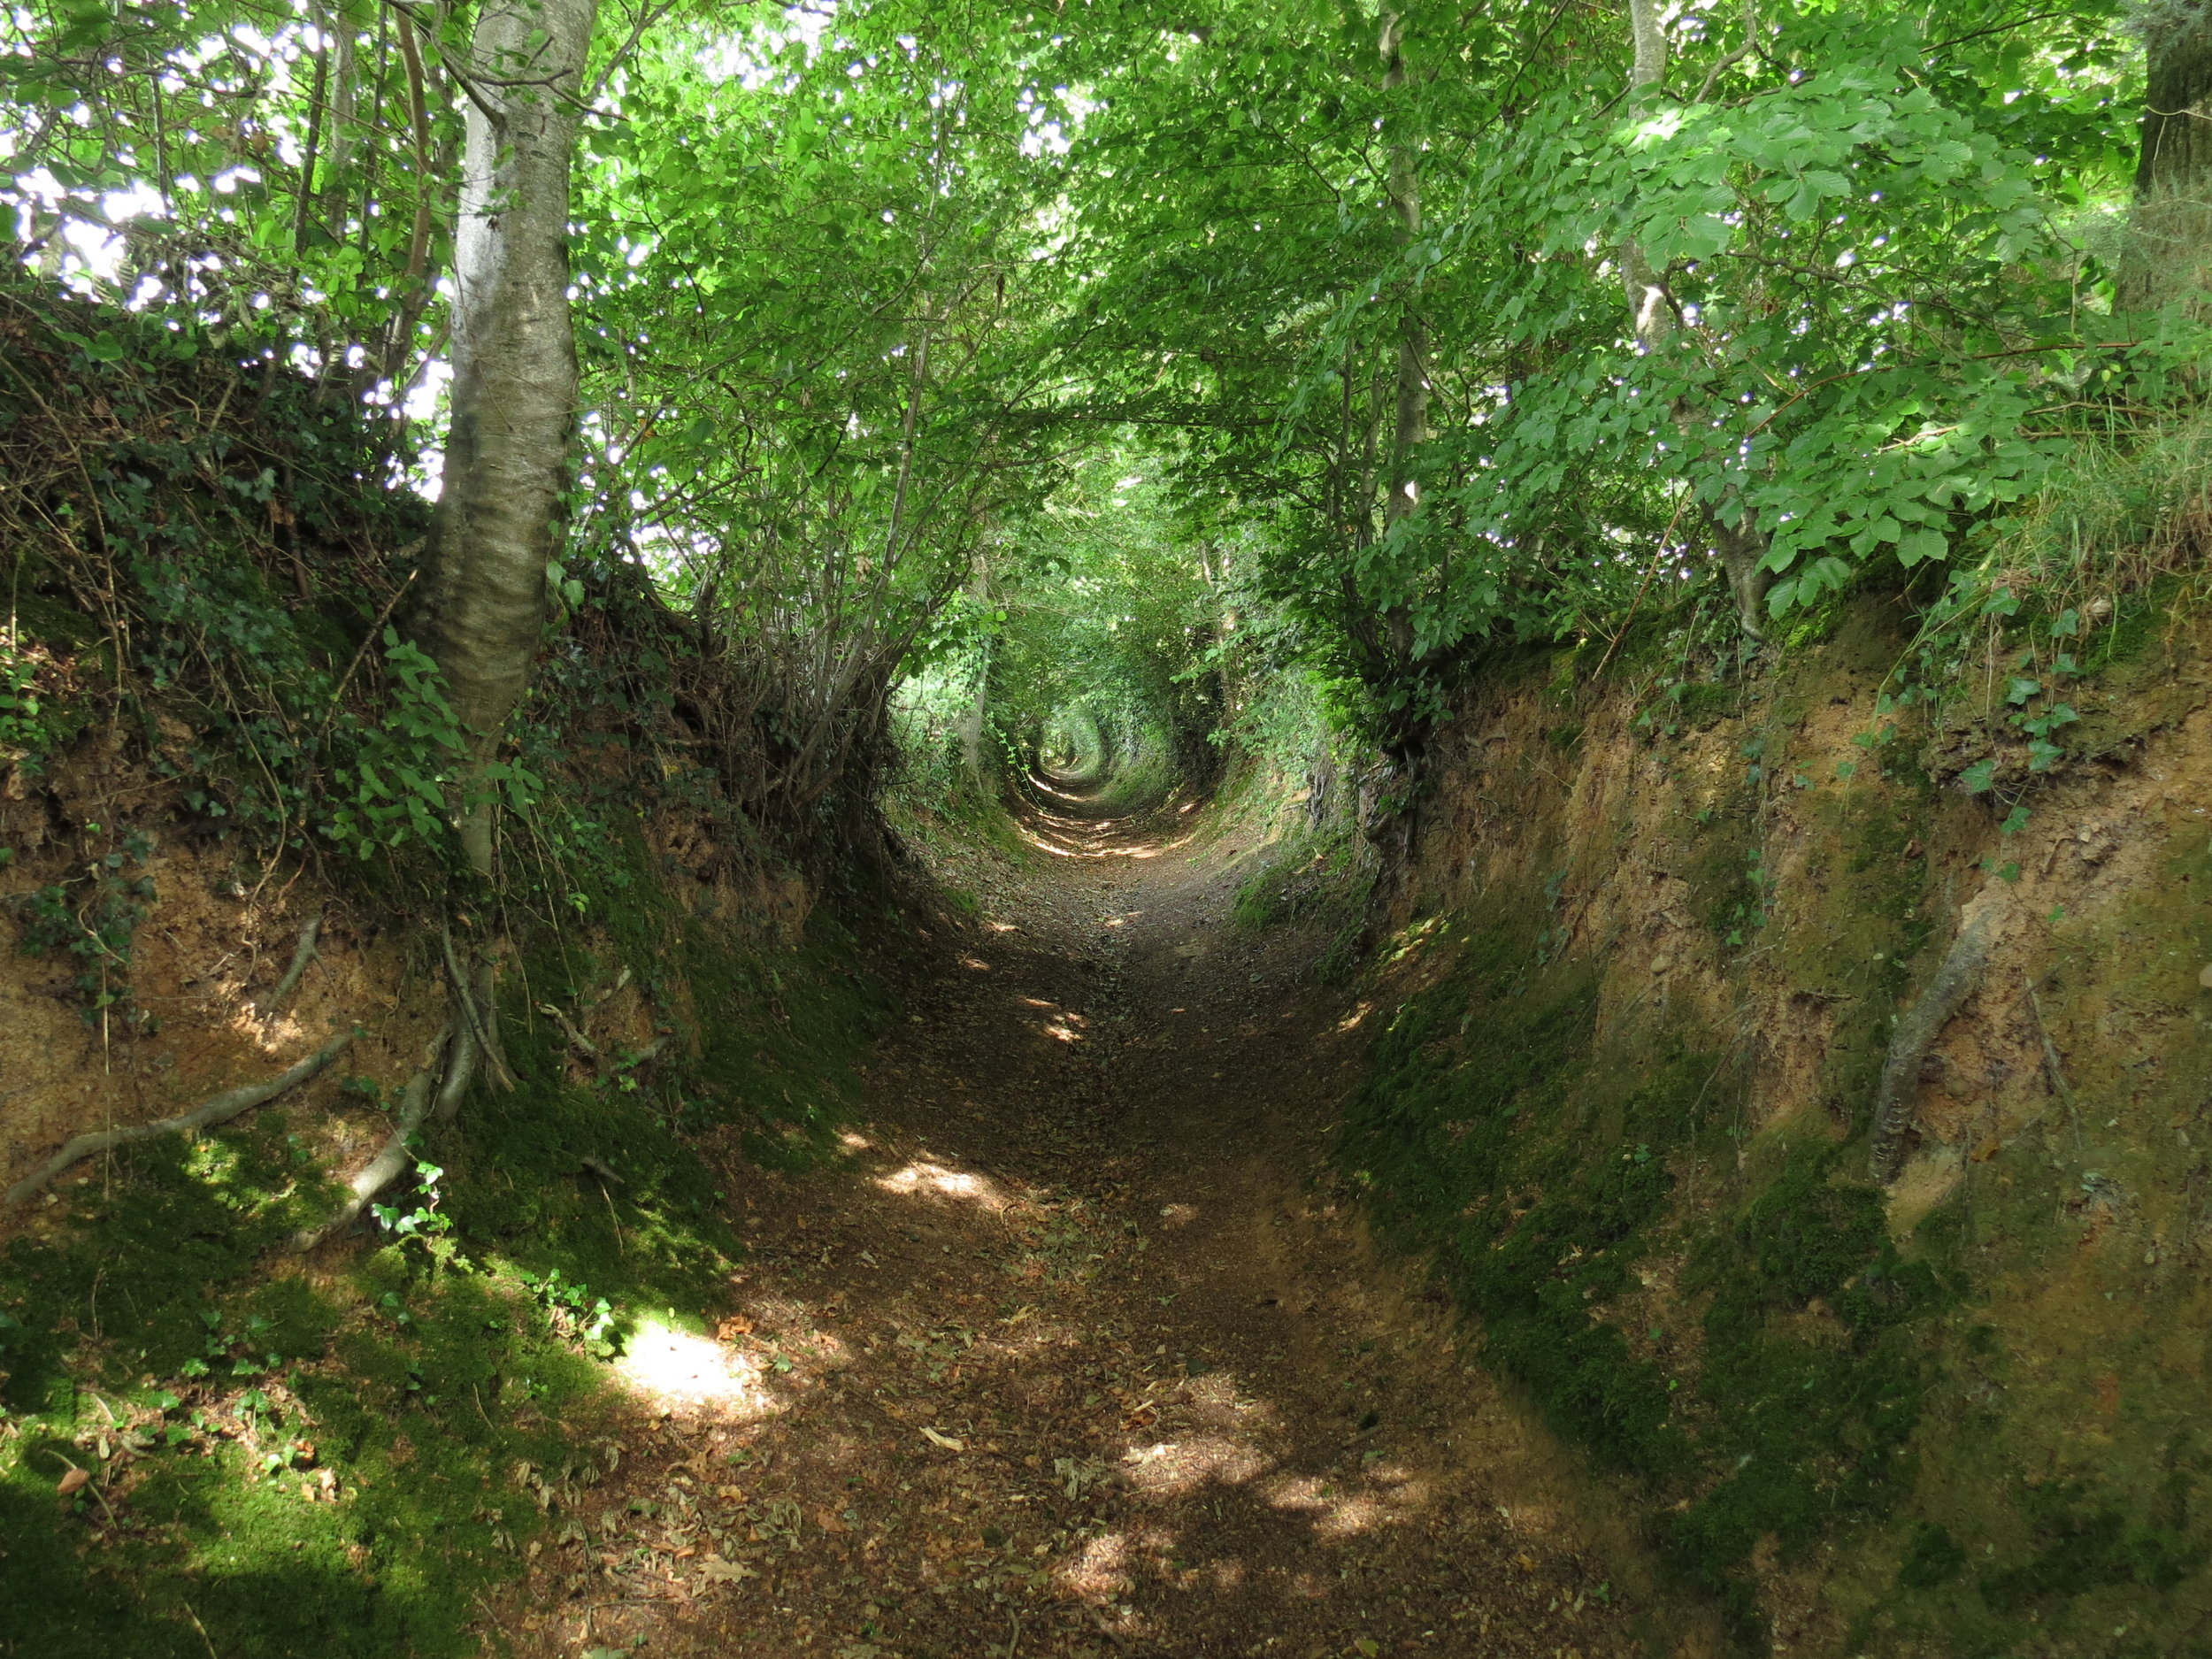 Holloways were created from thousands of journeys along one path ( Image from Wikipedia ). In a similar way, repeated actions create and strengthen neural pathways in the brain to form habits.